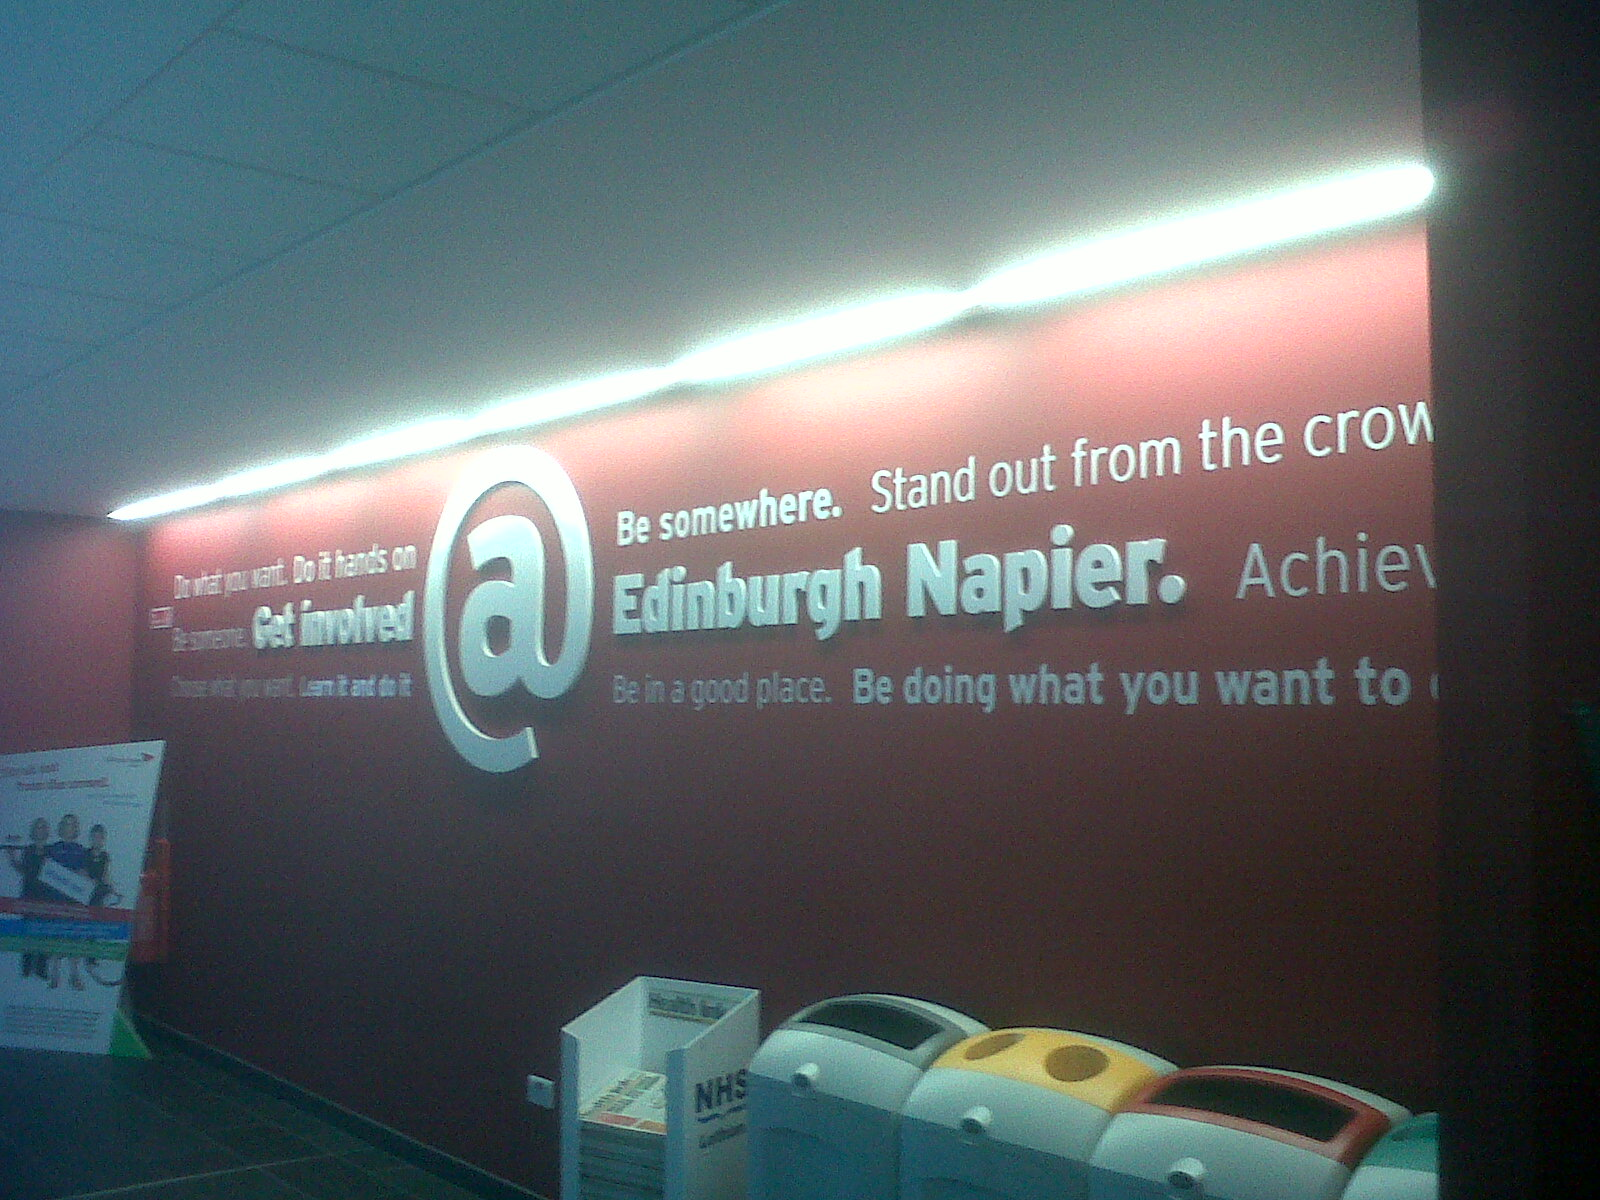 Edinburgh Napier Contour Cut Text